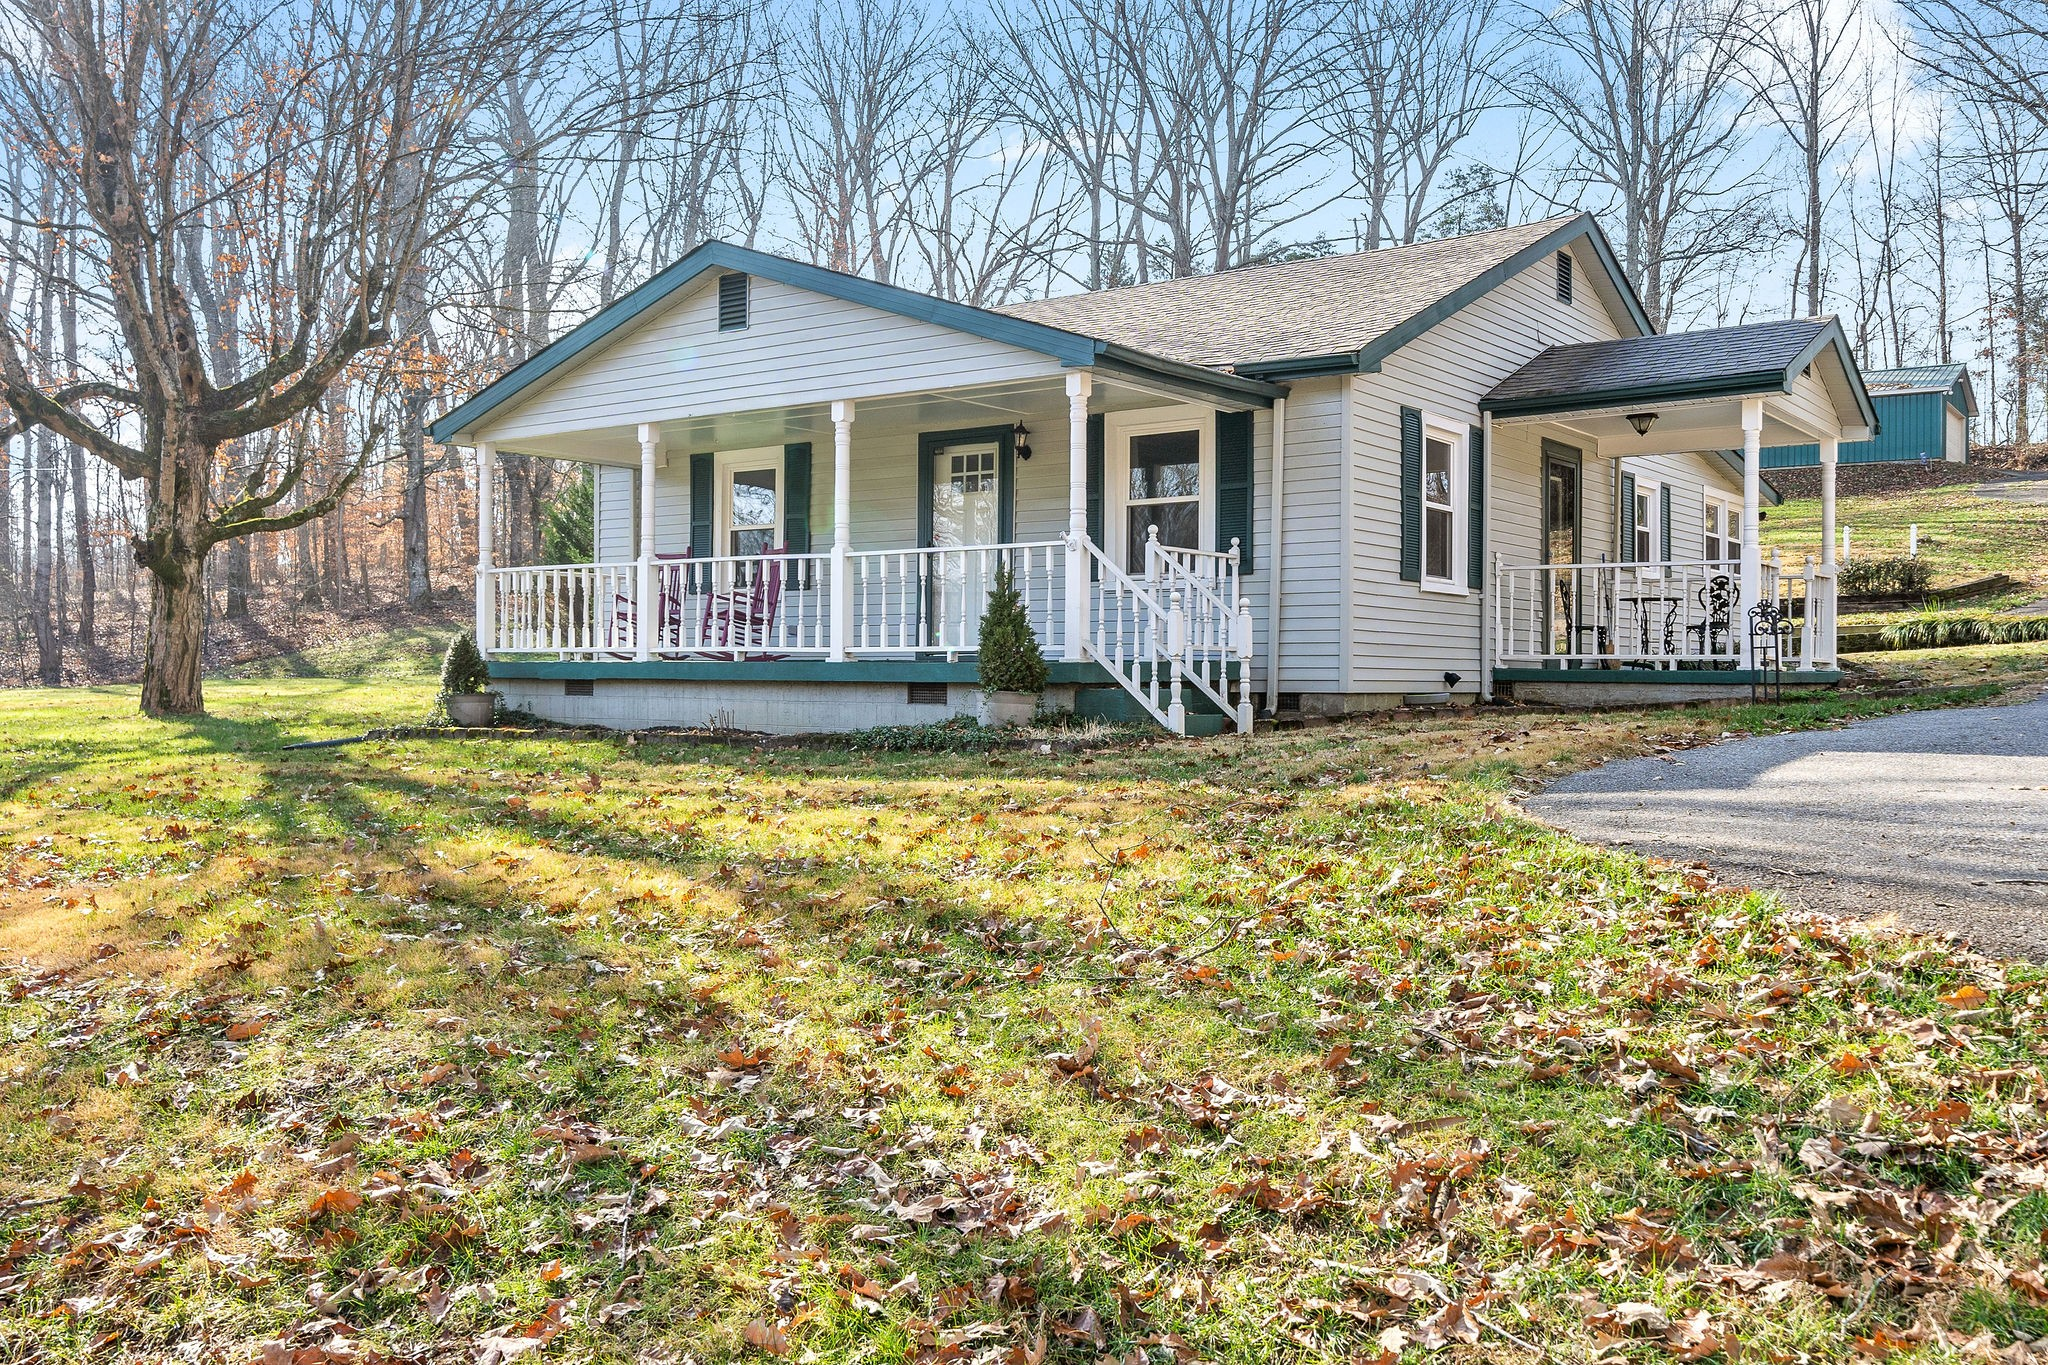 Oh my, this is perfect!  A 2bdr, 2ba cottage feel home sitting on just shy of 3 acres packed with its own punch!  The kitchen is updated with gas stove, SS appliances, subway tile, and granite counter tops!  Laminate flooring throughout, master suite, two porches, RV Parking w/hook up, 24x40 shop w/electric, another pad w/electric hook up, plenty of parking!  You have to see this home!